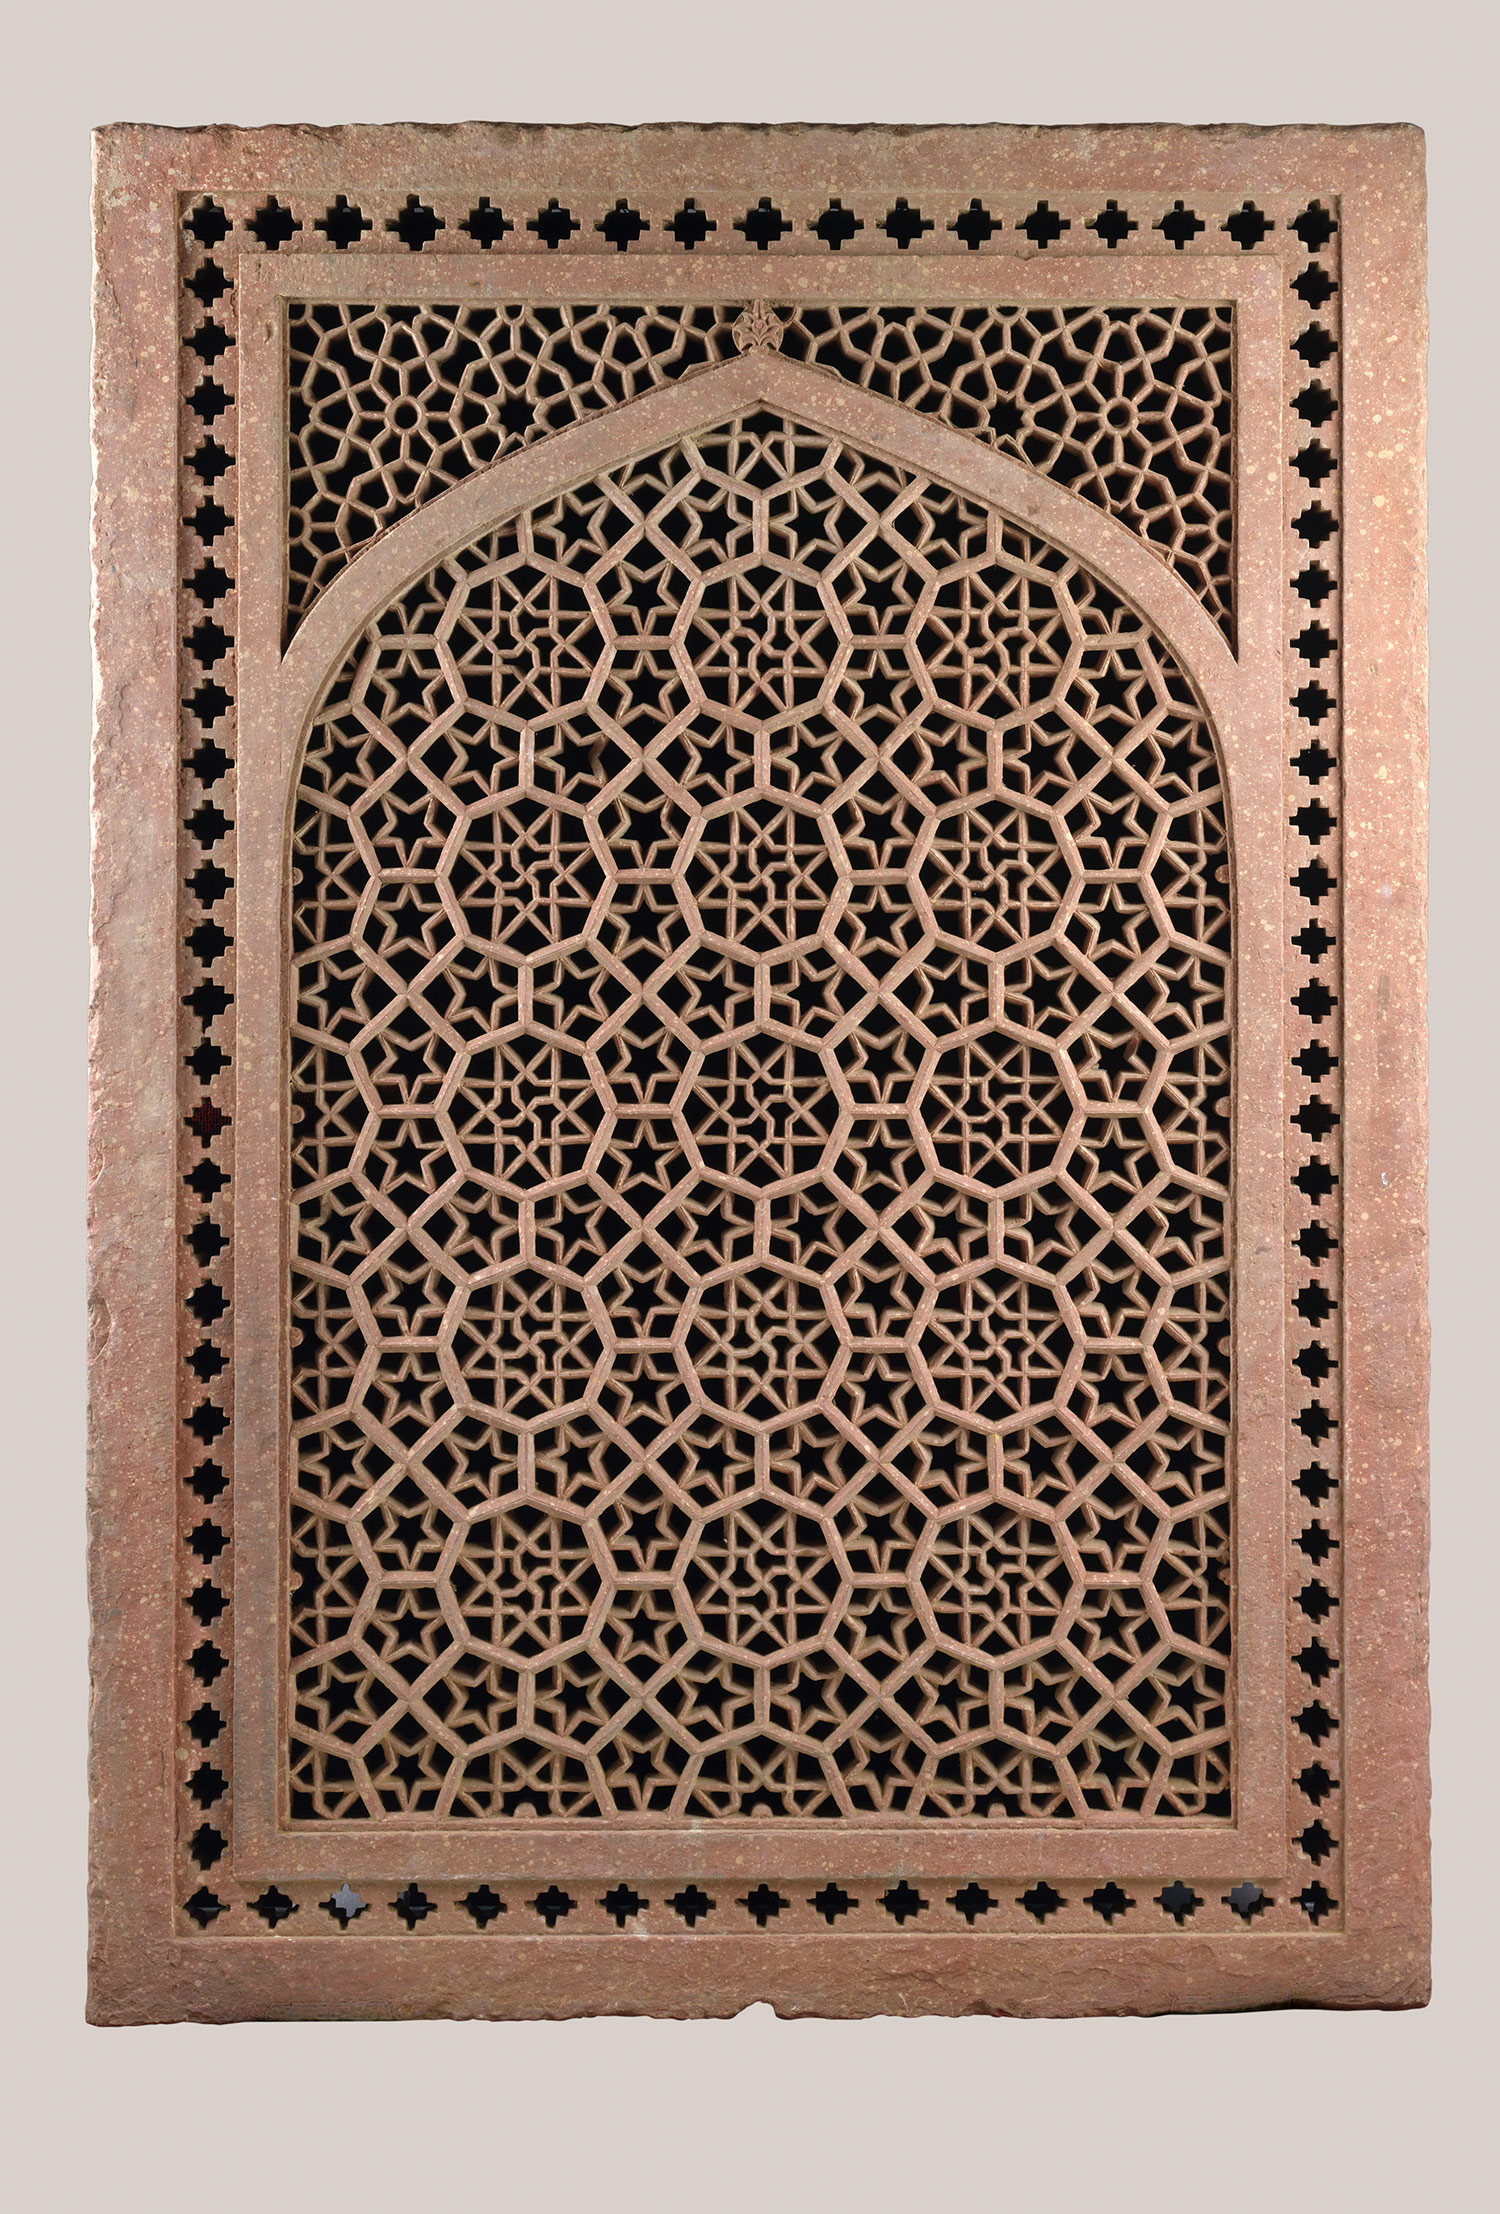 Jali Screen One Of A Pair Probably From Fatehpur Sikri India 67 2